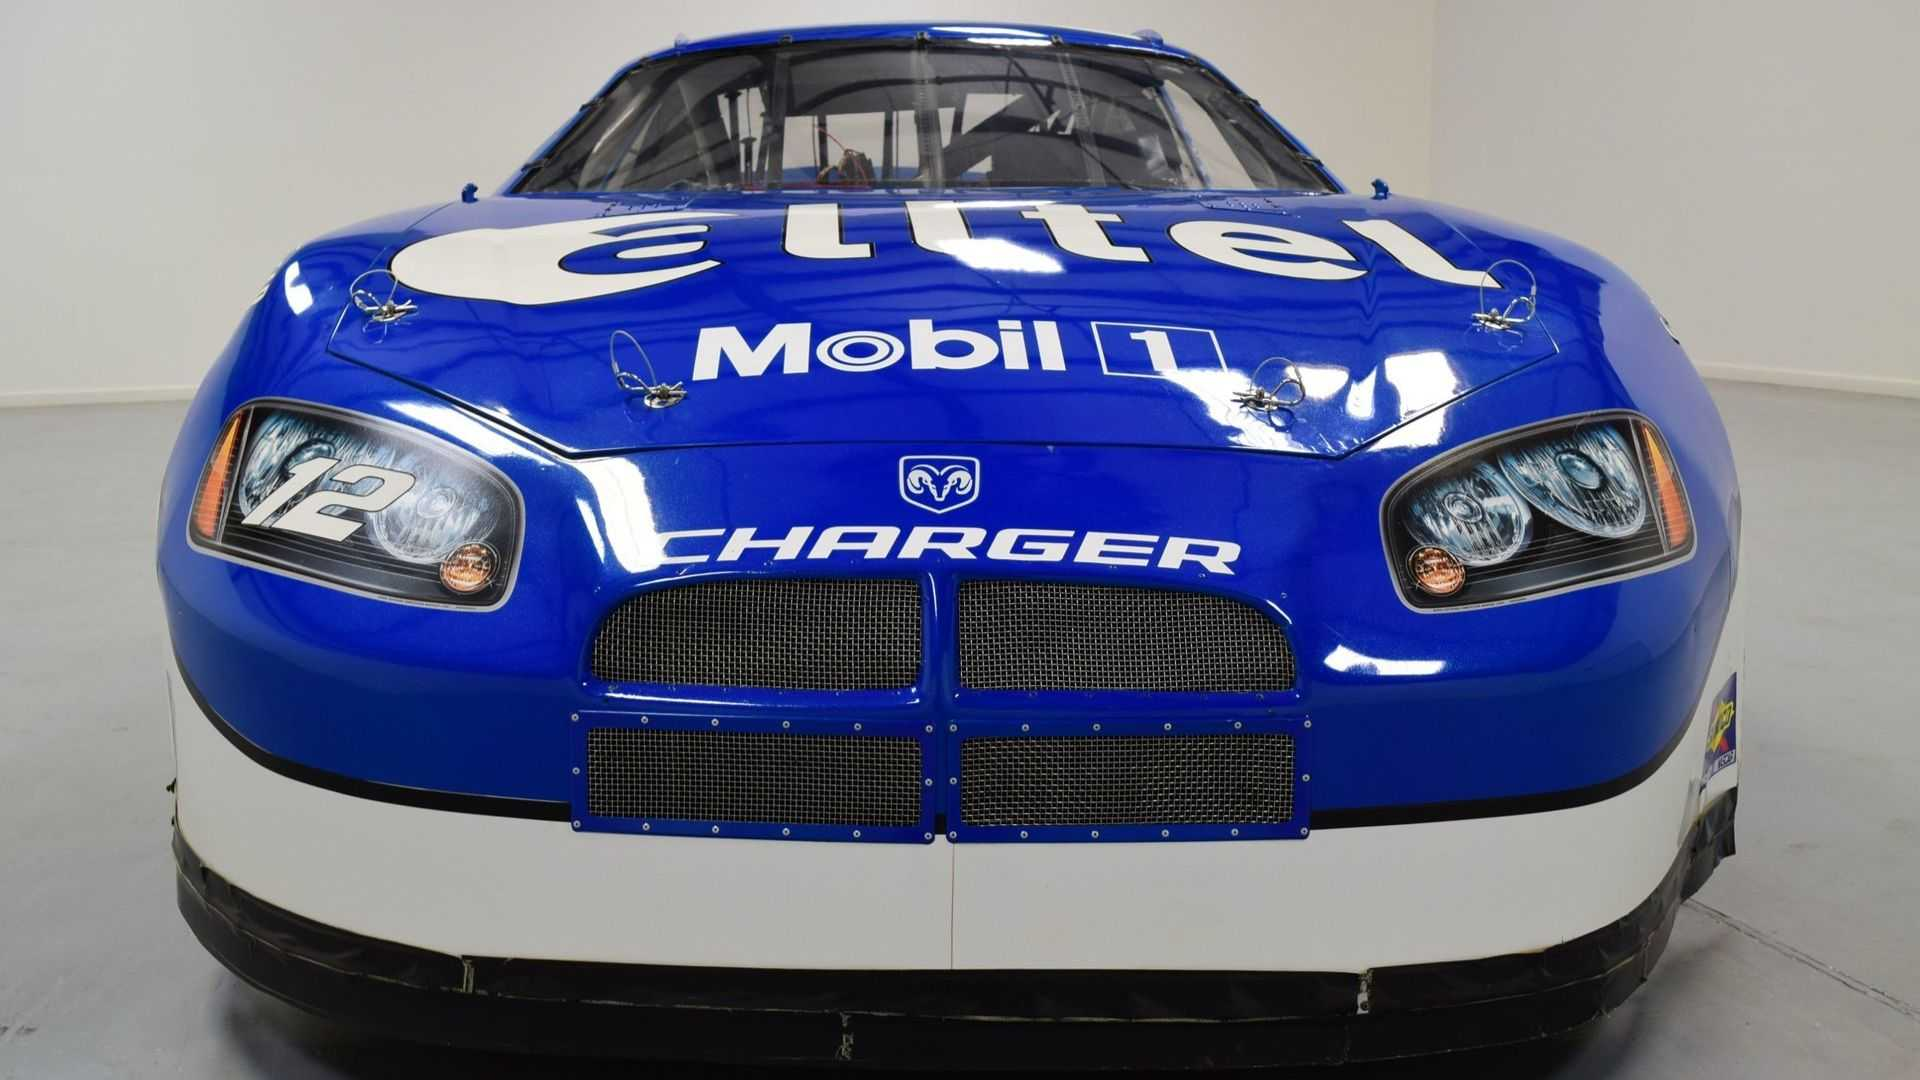 Ryan Newman S 2007 Dodge Charger Nascar Cup Car Is For